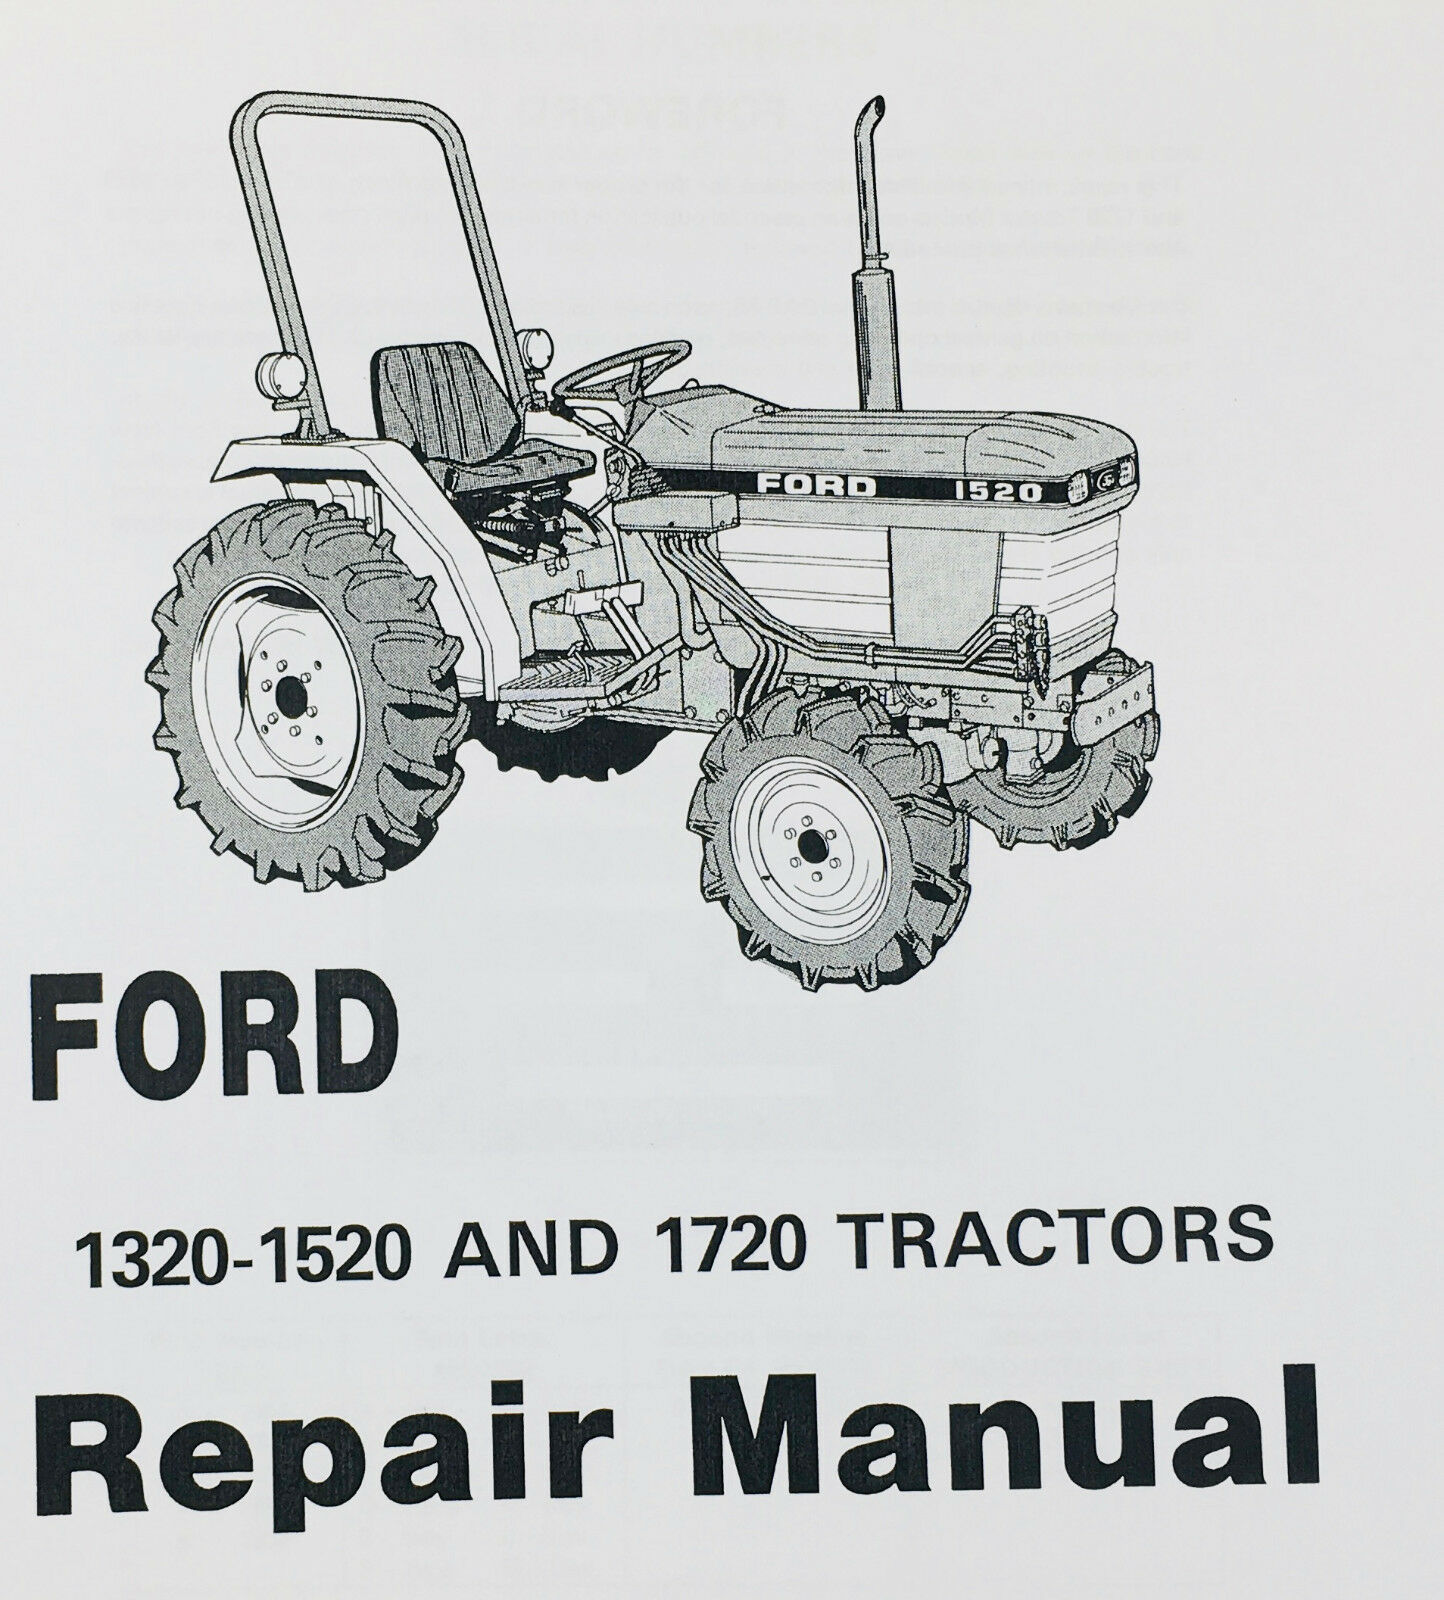 Ford 1320 1520 1720 Tractor Service Manual Technical Repair Shop Workshop |  eBay